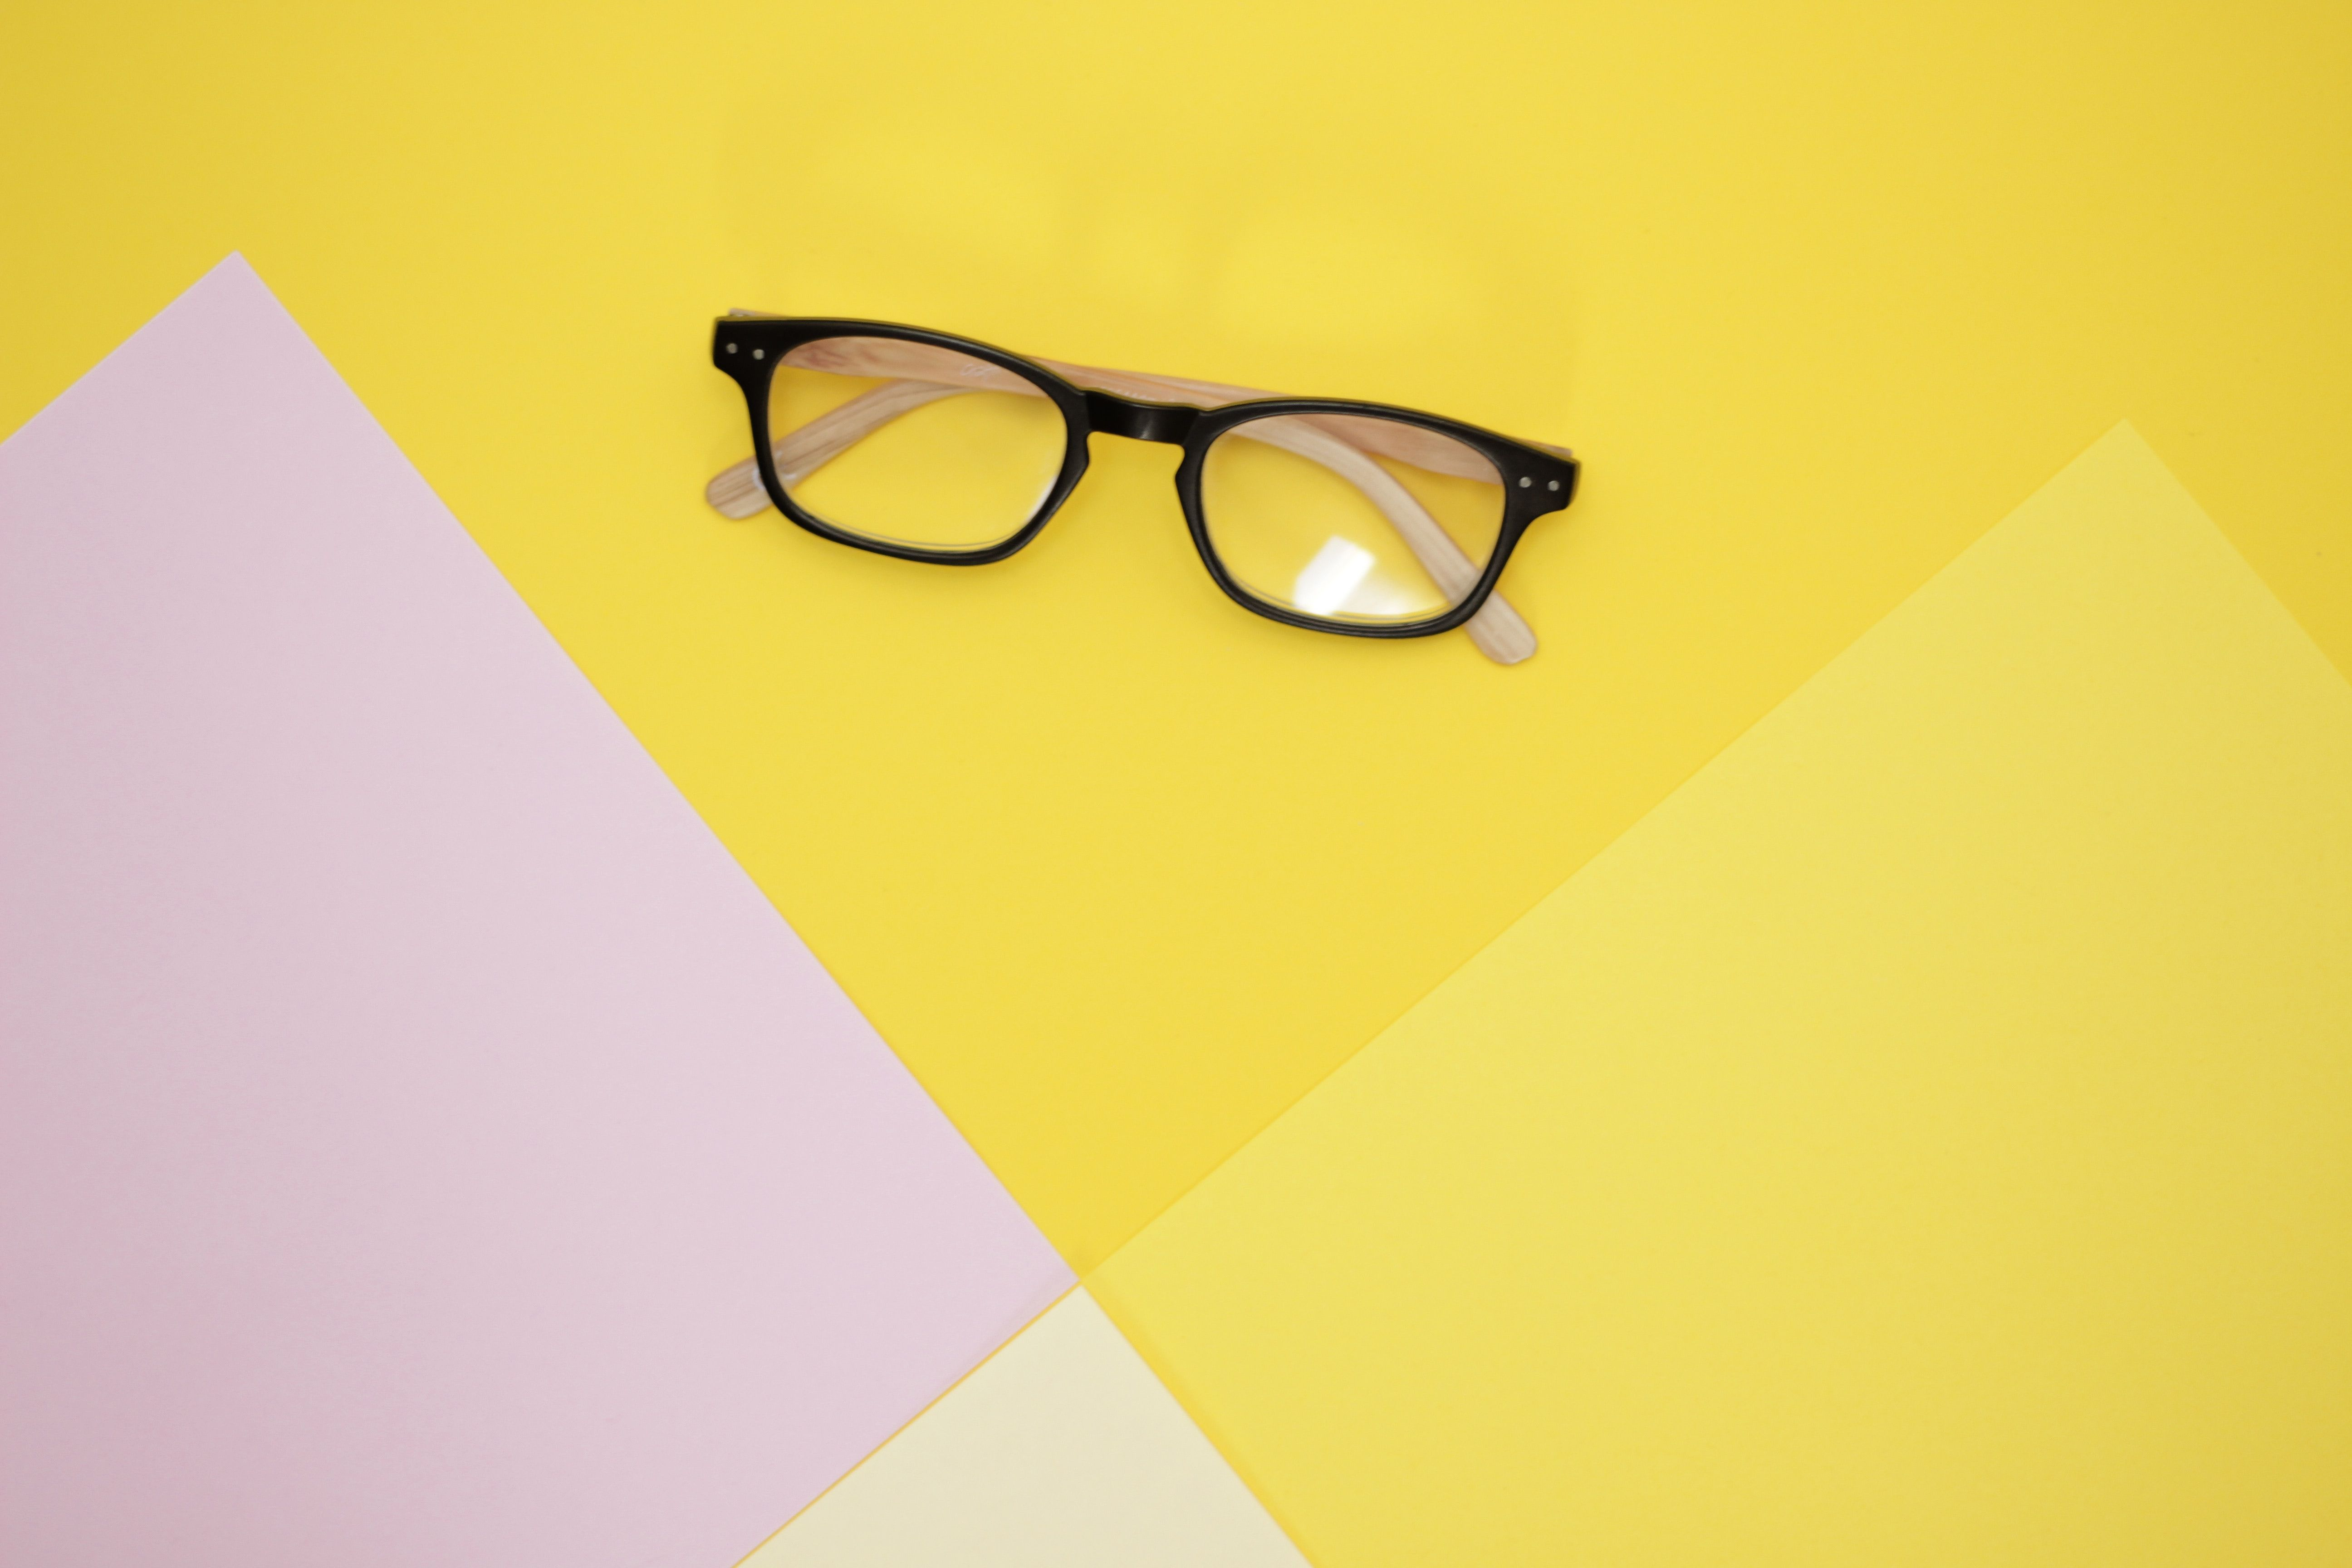 Pin By Design Cooking On Med Optics Glasses Graphic Design Ads Free Glasses